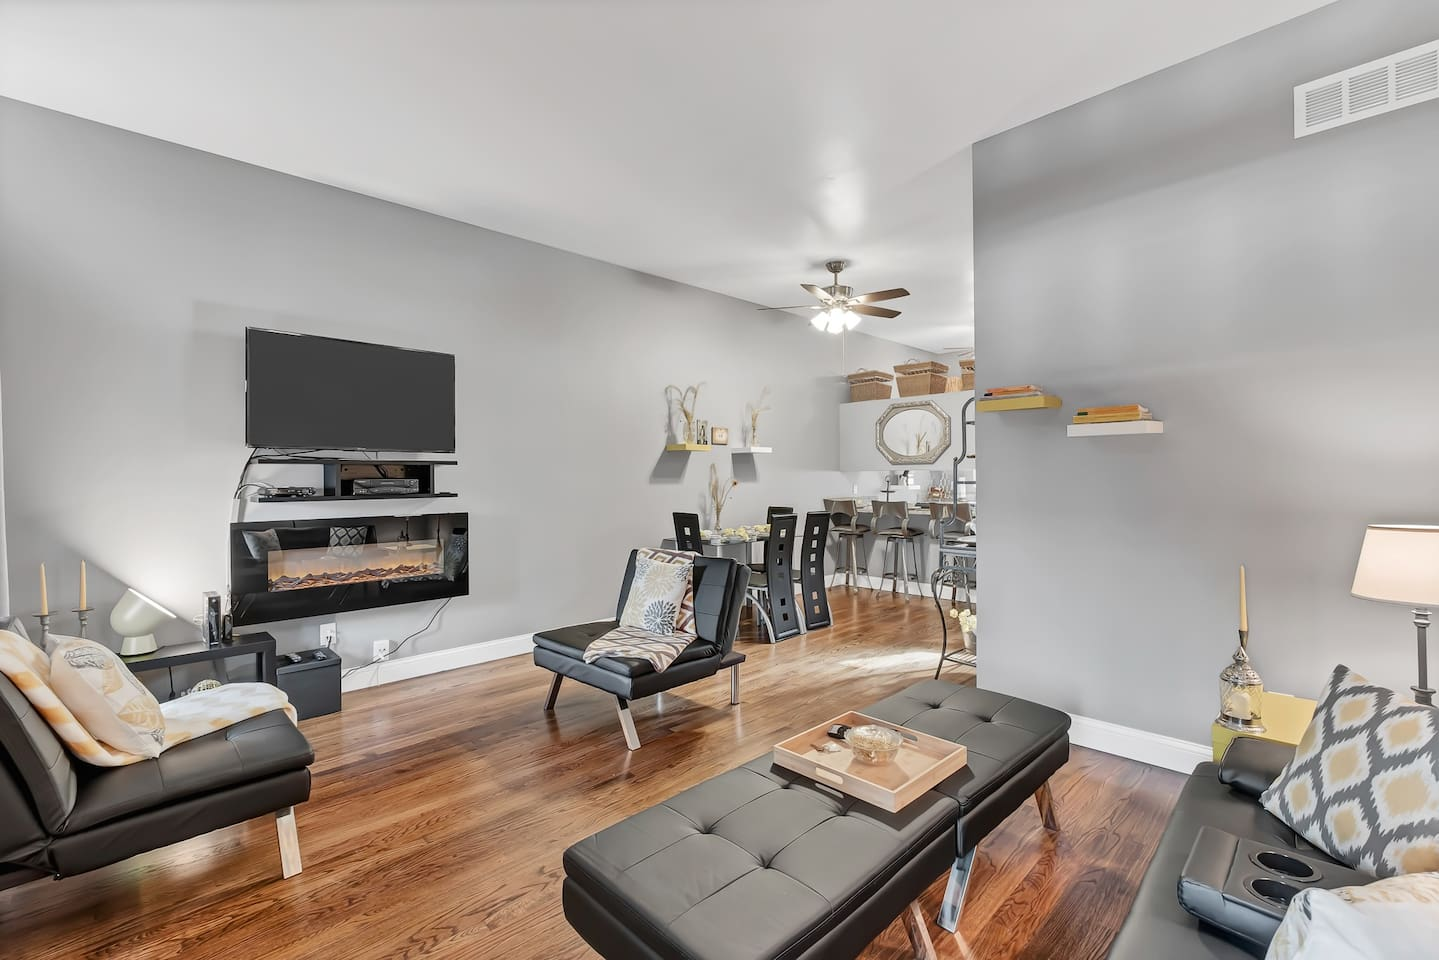 Living Room: AT&T U-verse on all TVs with premium movie and local channels (470+ channels); Netflix, SiriusXM, and paid subscription fitness videos